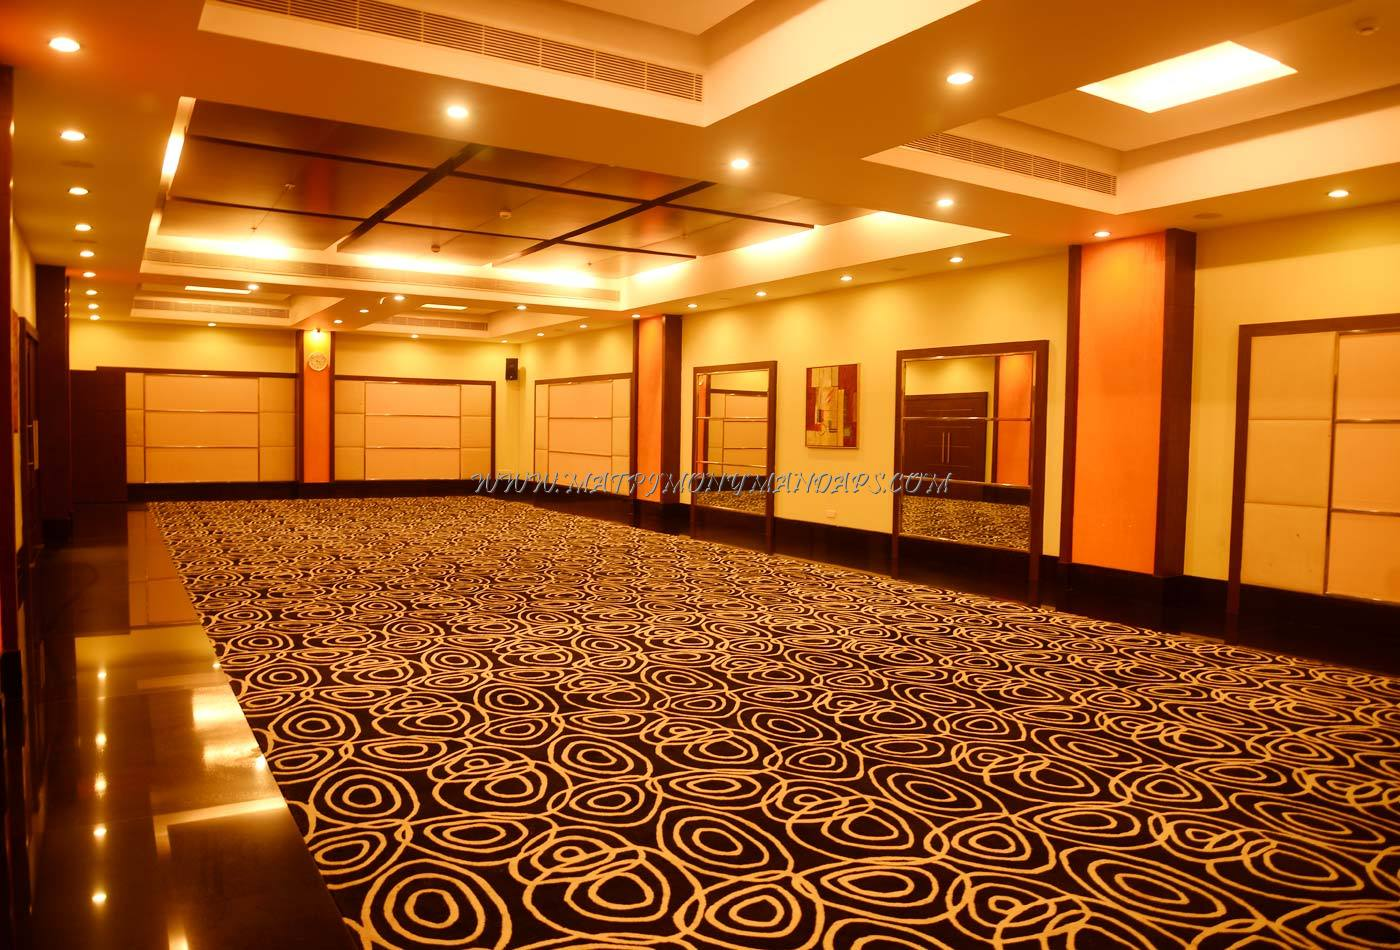 Find the availability of the Gokulam Park Sabari OMR (A/C) in OMR, Chennai and avail special offers